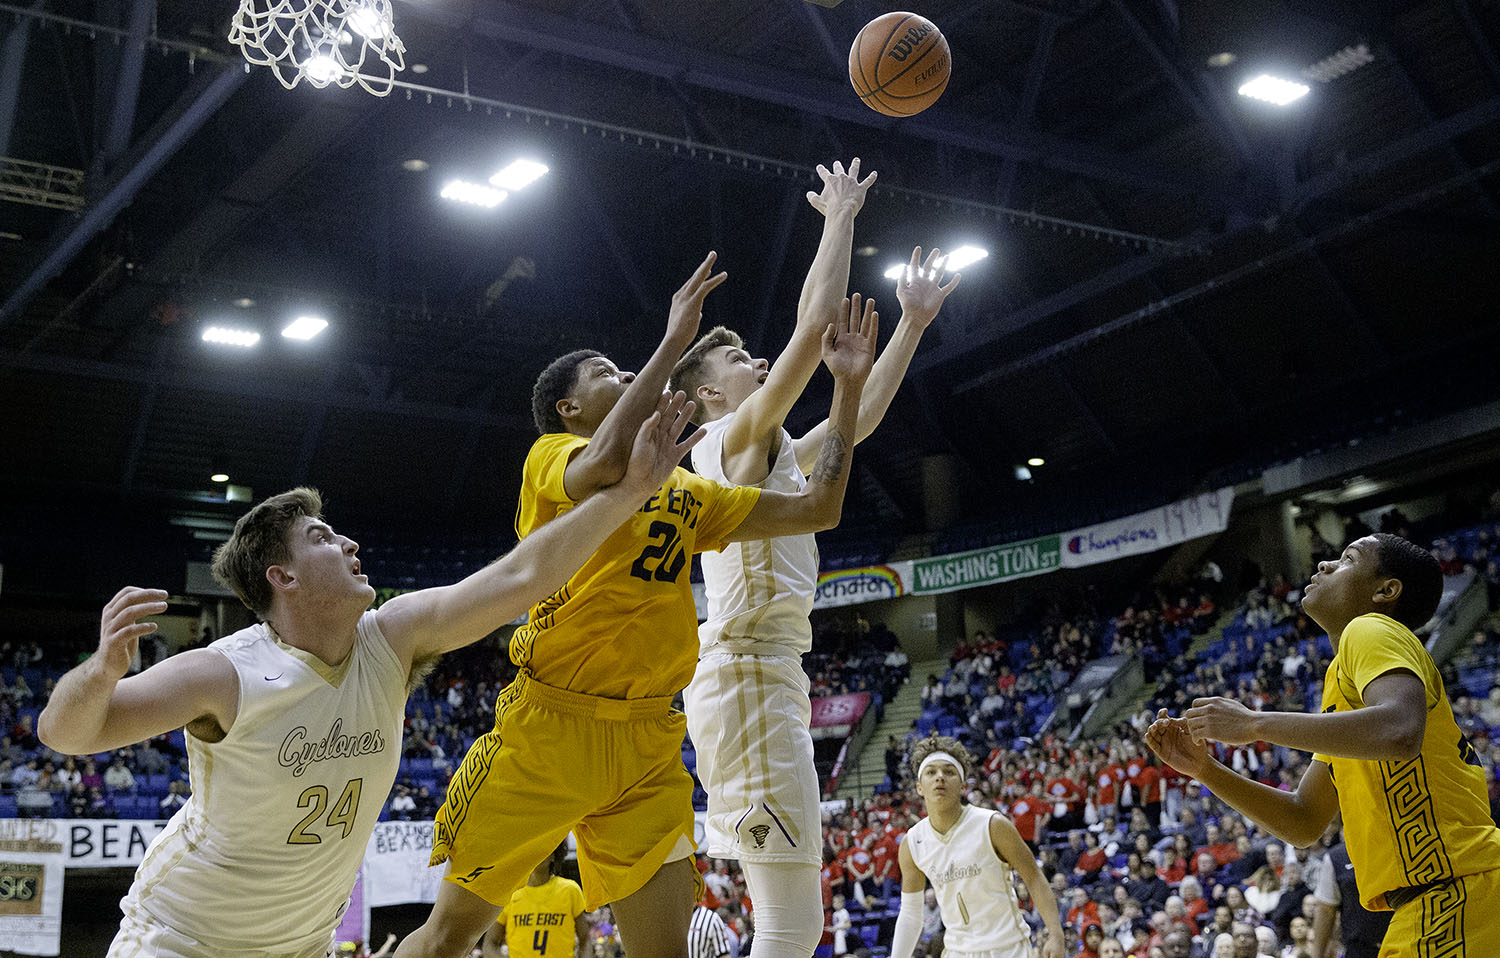 Sacred Heart-Griffin's Nick Broeker and Kyle Ingram try to beat Southeast's Abdur Muhammad to a rebound  during the Boys City Tournament at the Bank of Springfield Center Friday, Jan. 18, 2019.  [Ted Schurter/The State Journal-Register]